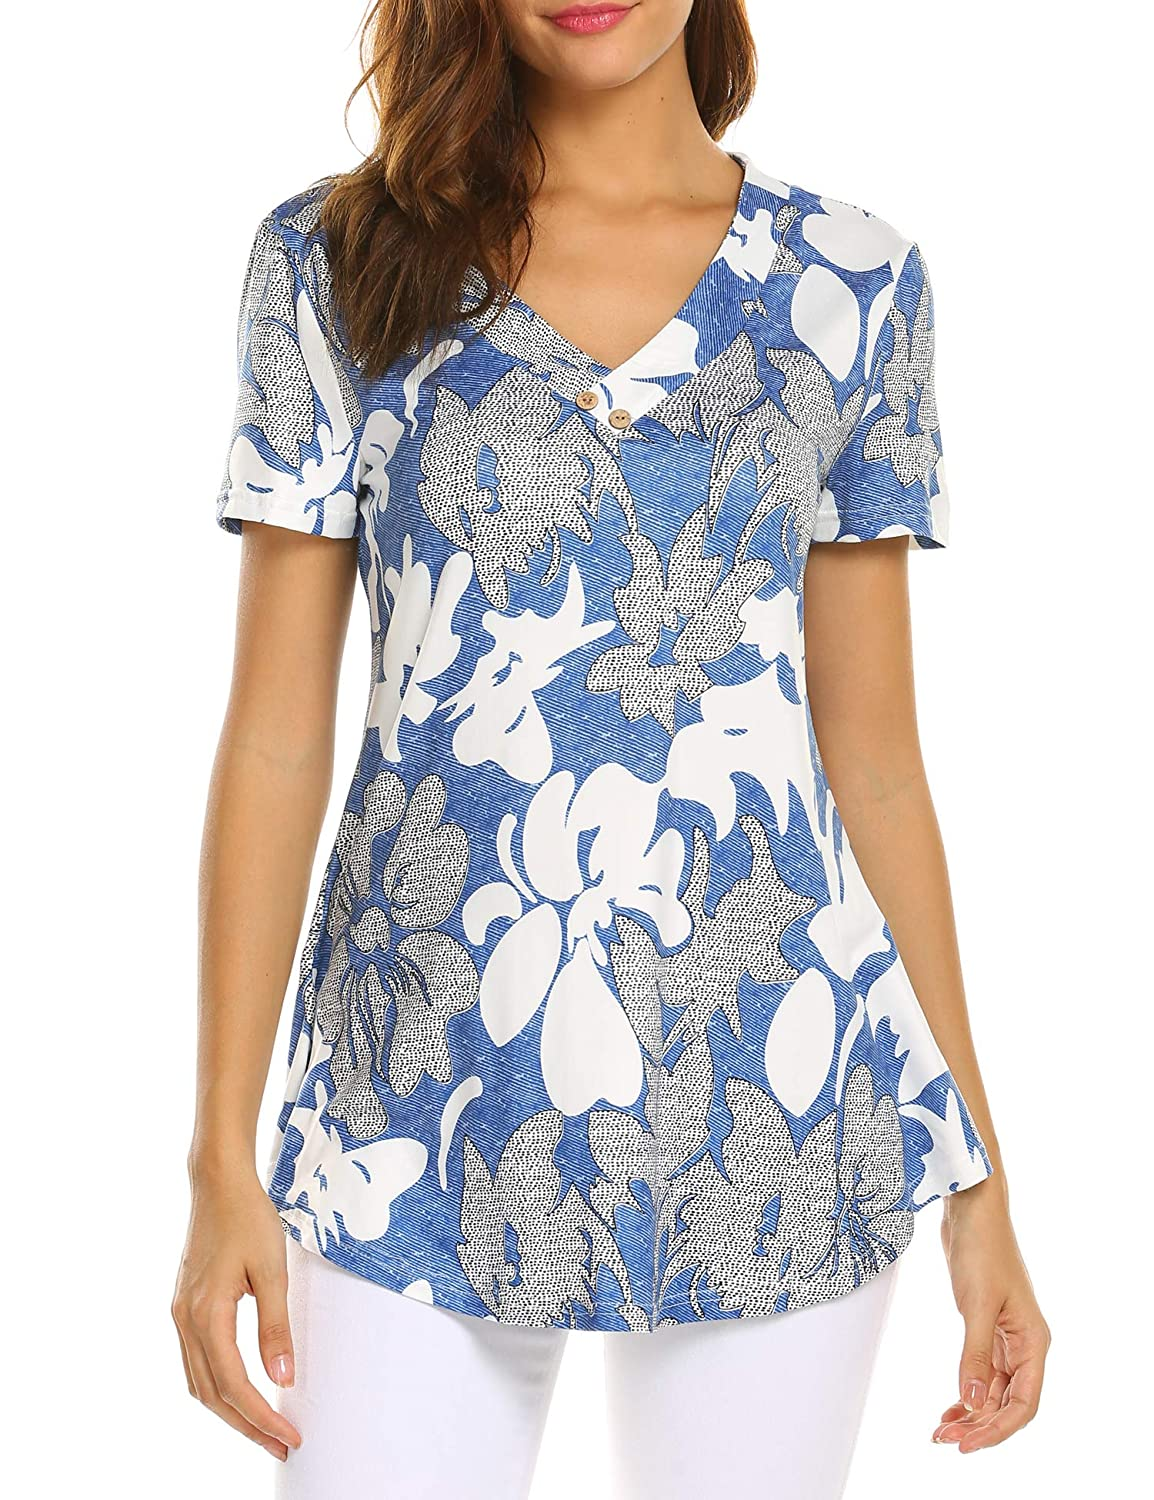 Abluee Sweetnight Women Floral Print V Neck Button Decor Peasant Summer Swing Tunic Tops Shirts